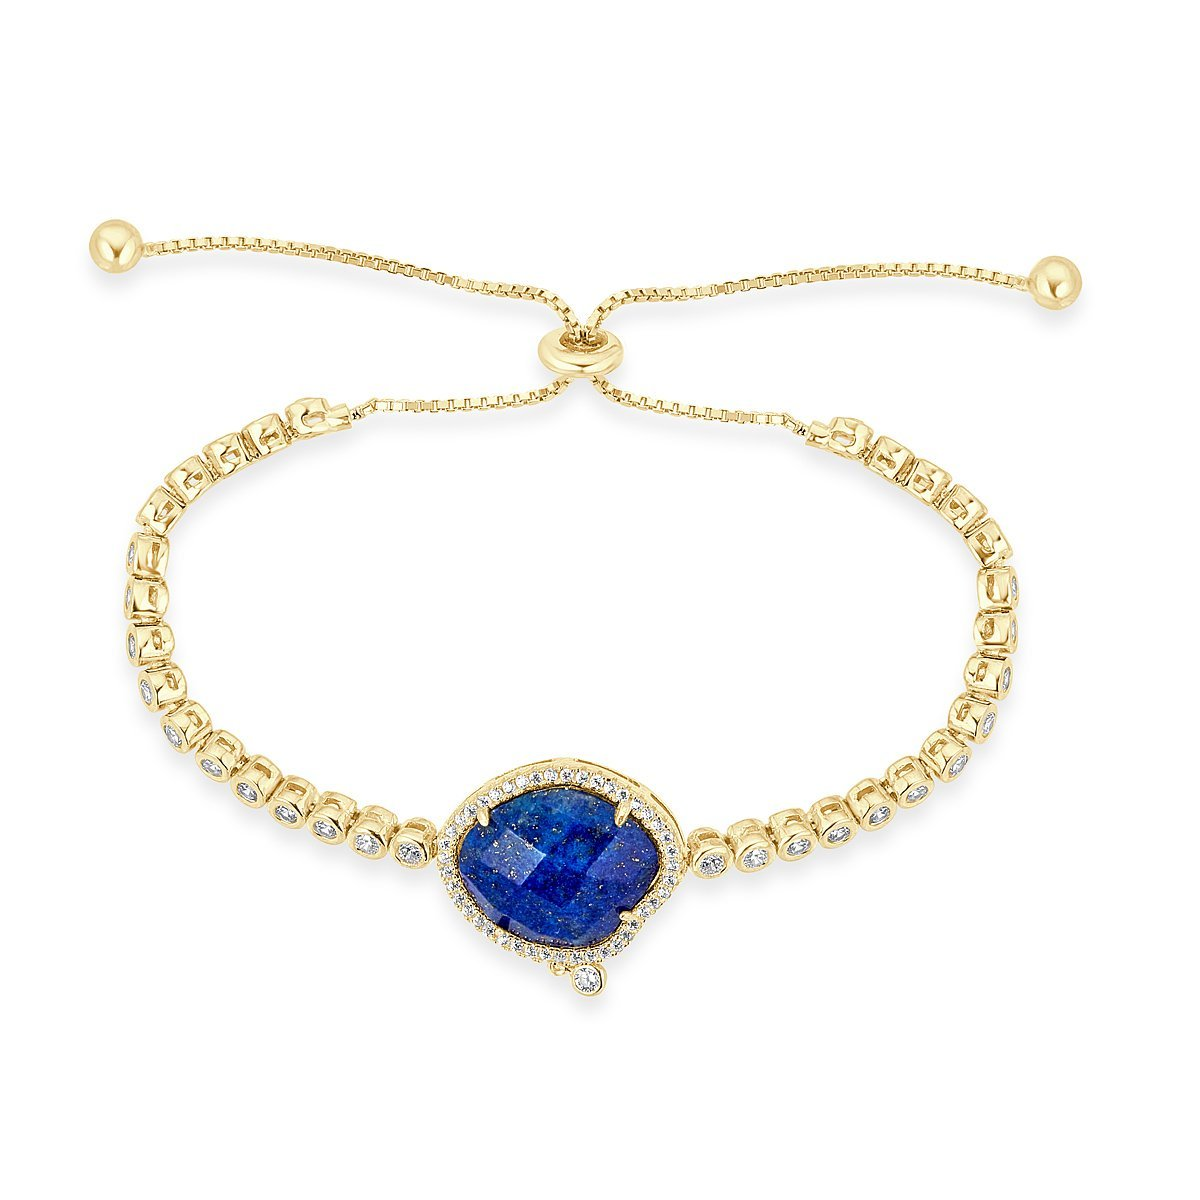 Gold Plated Sterling Silver Cubic Zirconia Lapis Paris Bracelet by Caratina